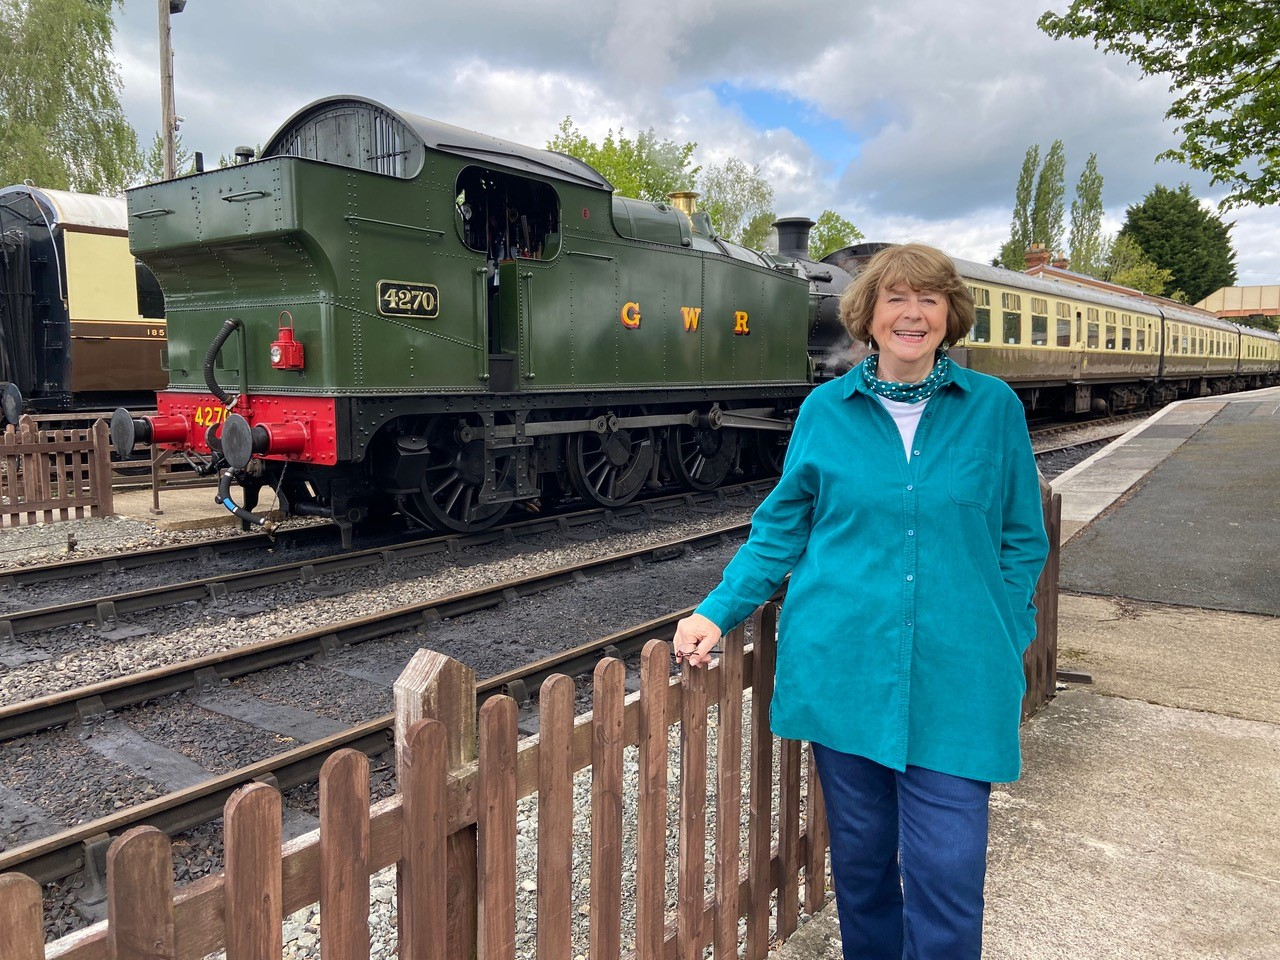 Pam Ayres at the Gloucestershire Warwickshire Steam Railway